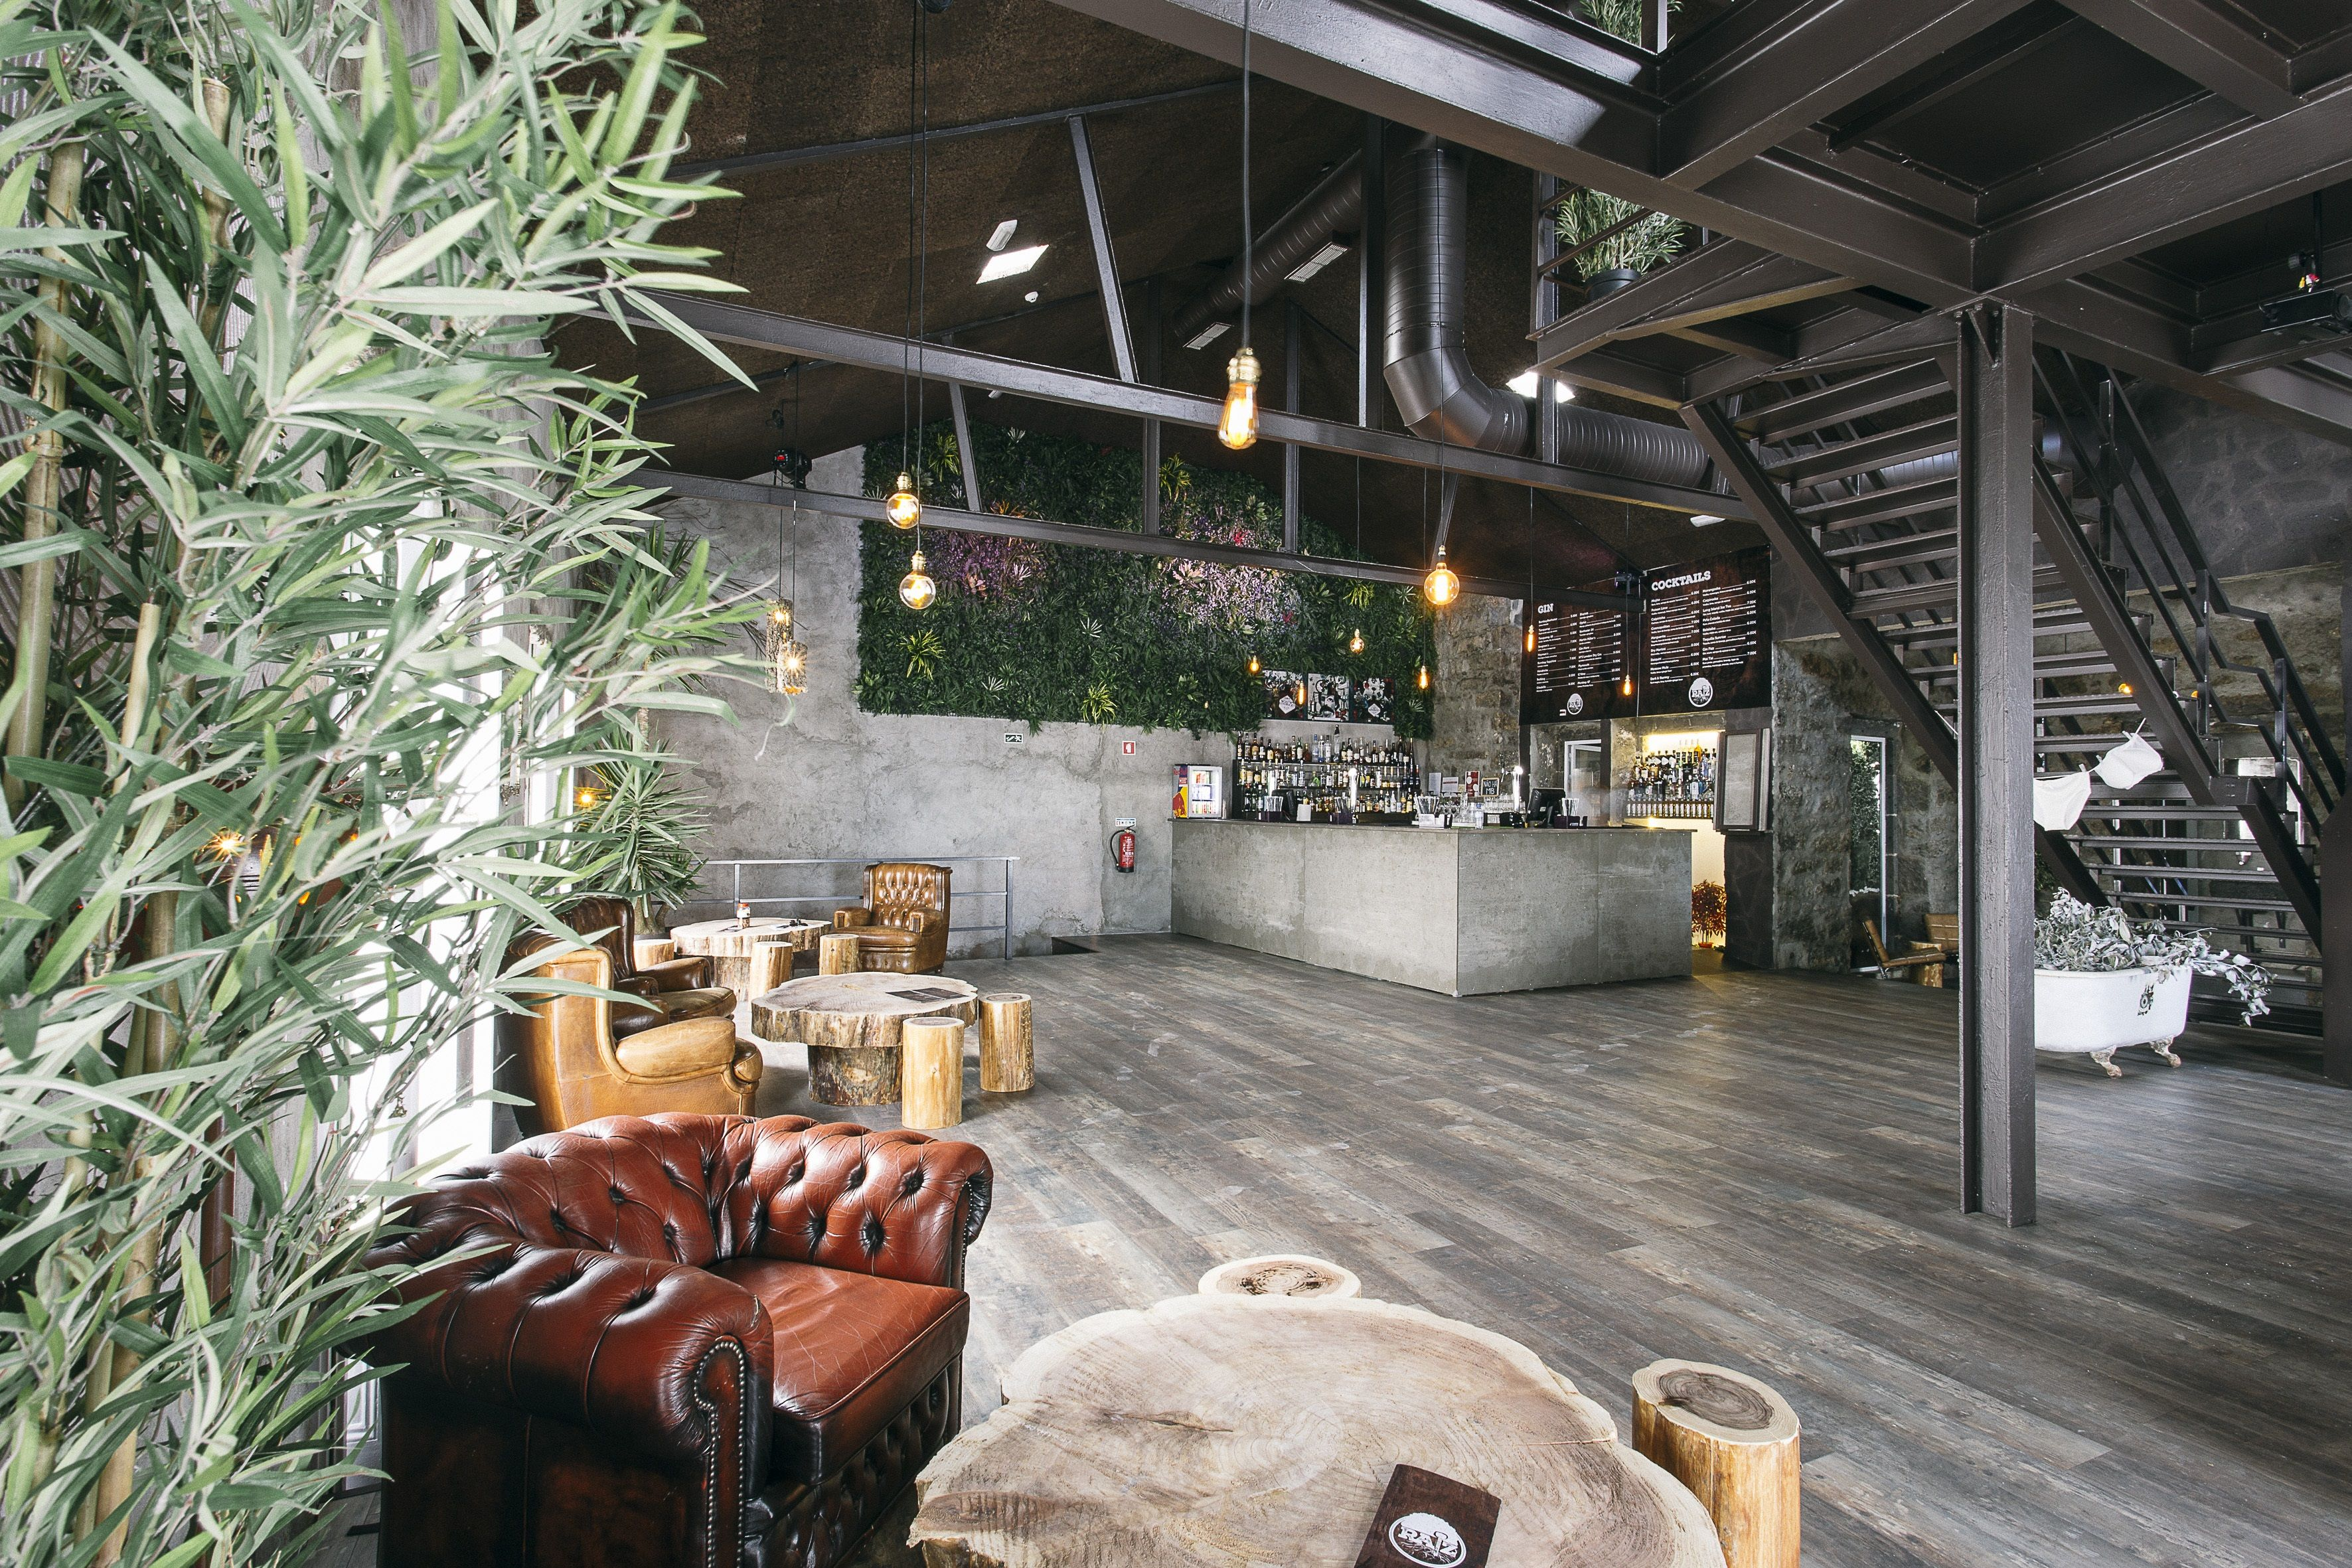 Livewall green wall system make conferences more comfortable - This Artificial Green Wall Foliage Creates The Perfect Botanical Backdrop For This Contemporary Bar Area